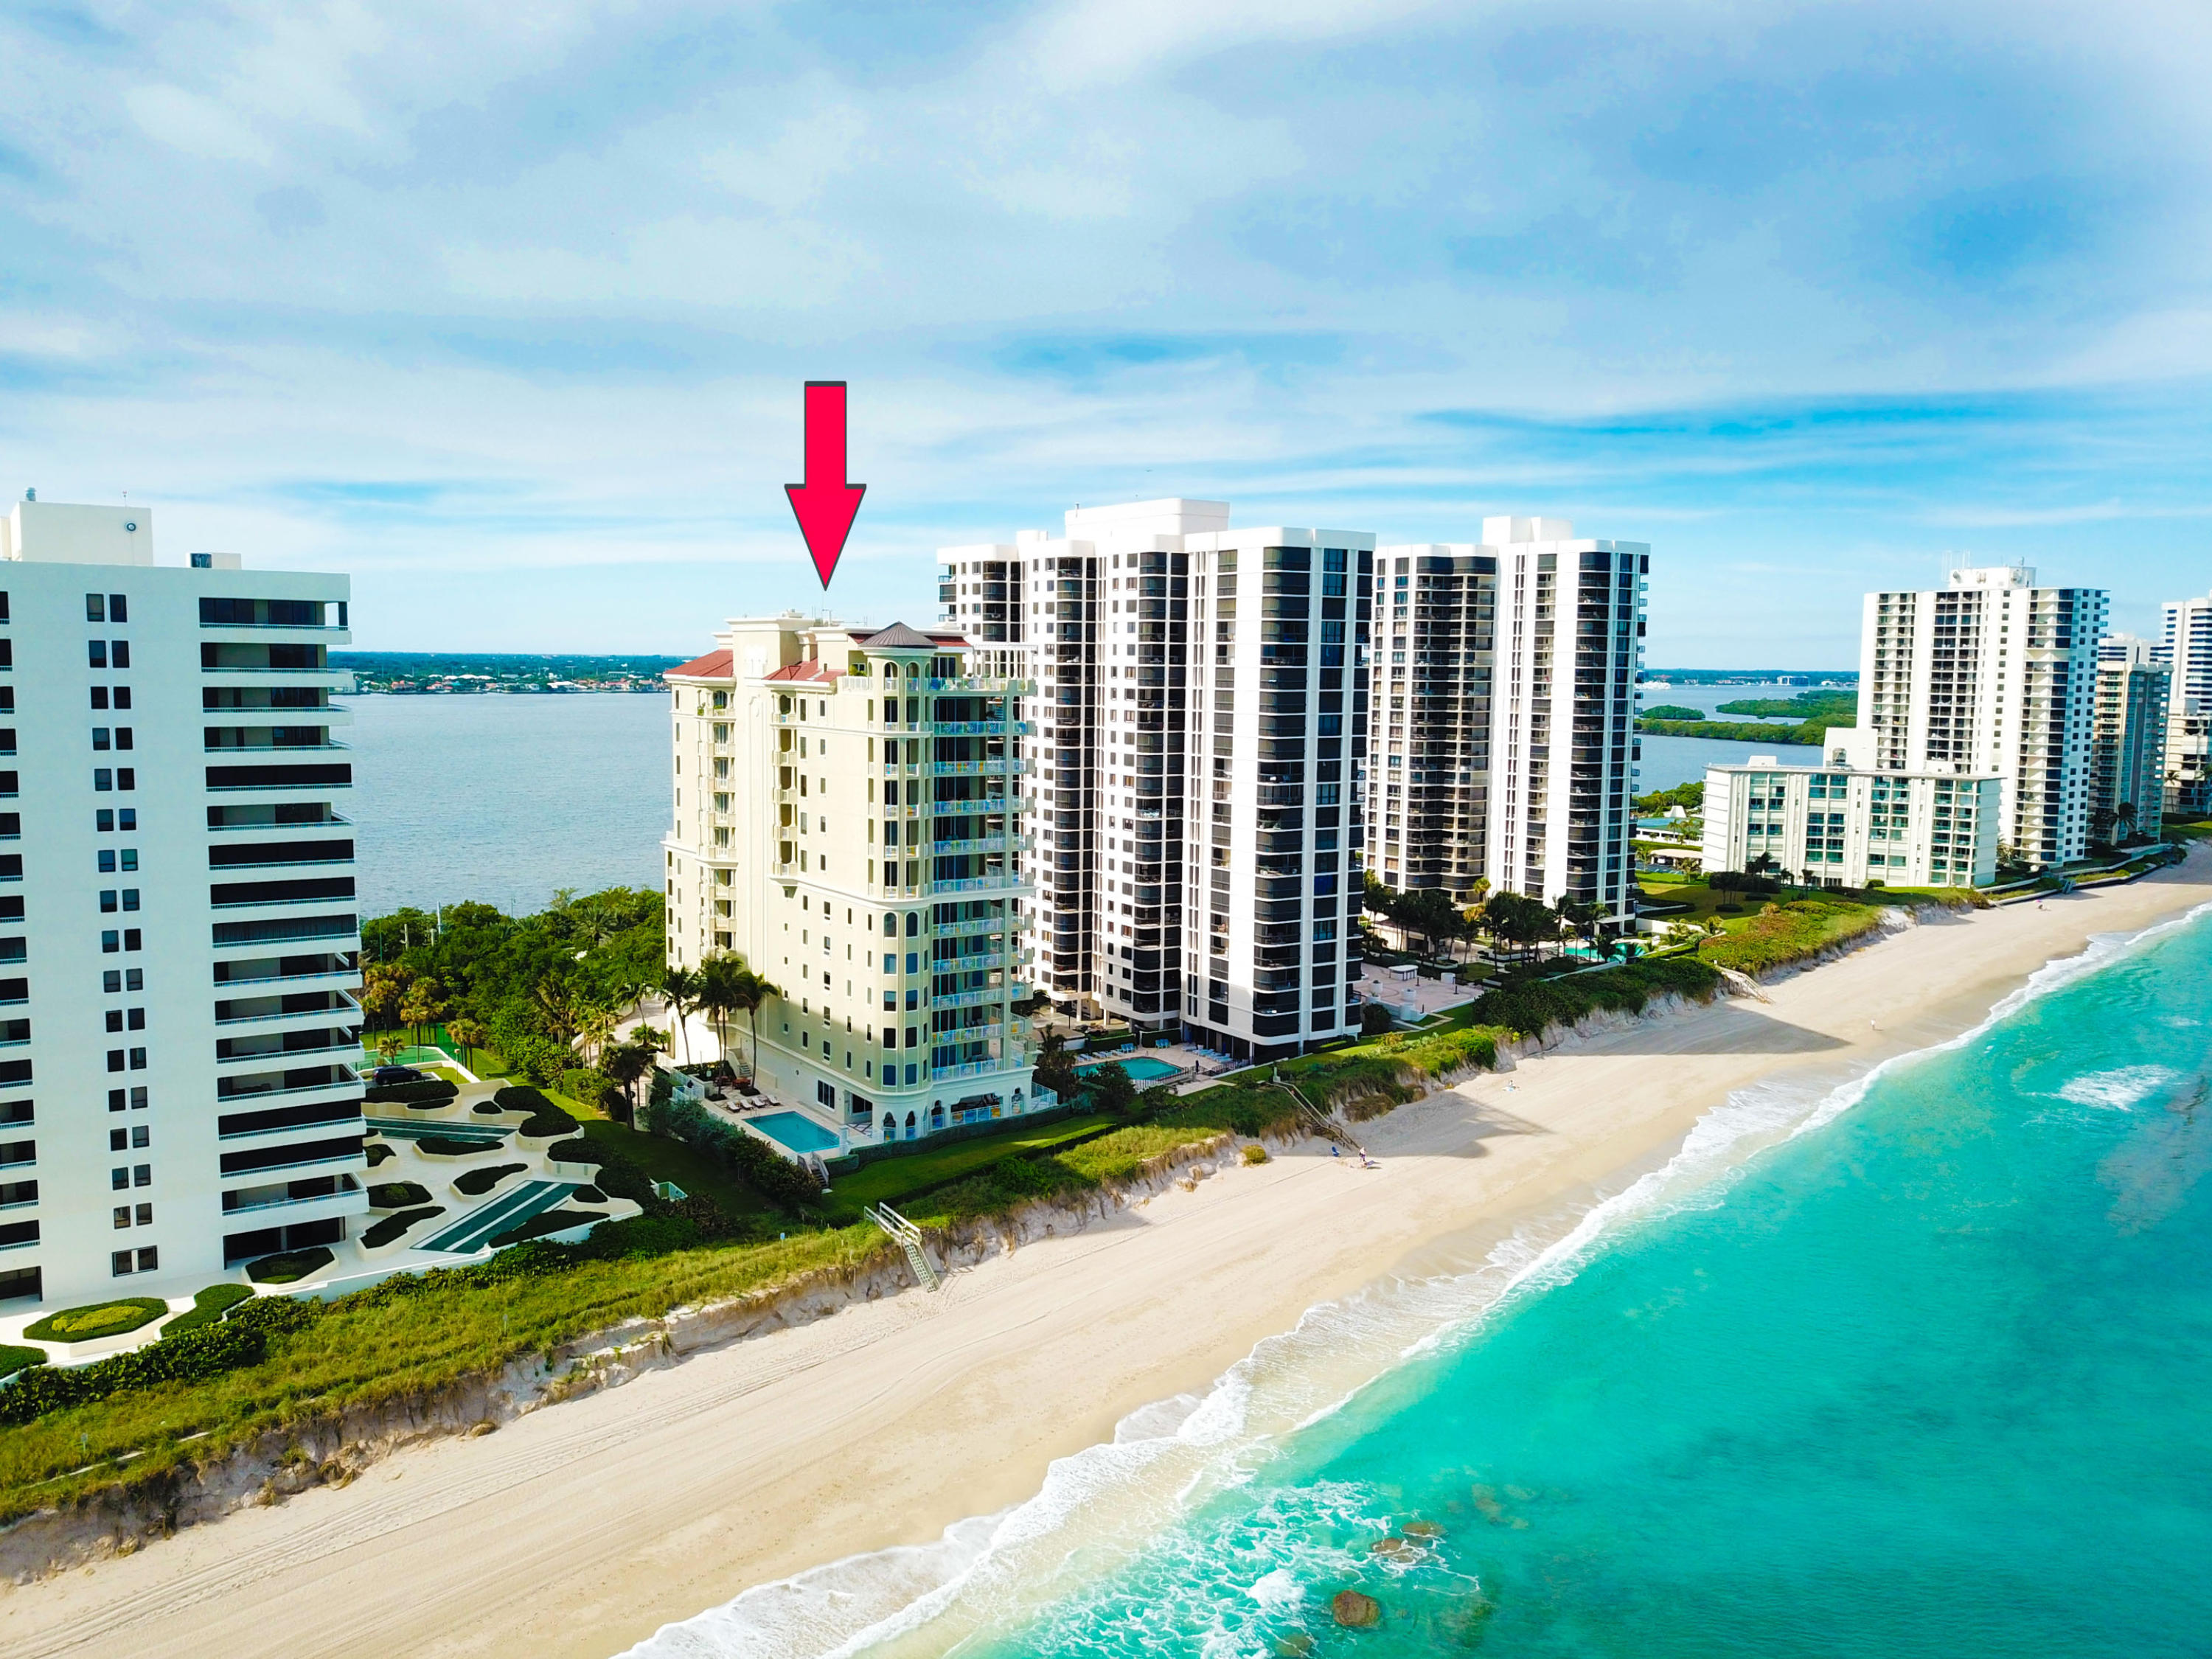 New Home for sale at 5310 Ocean Drive in Singer Island